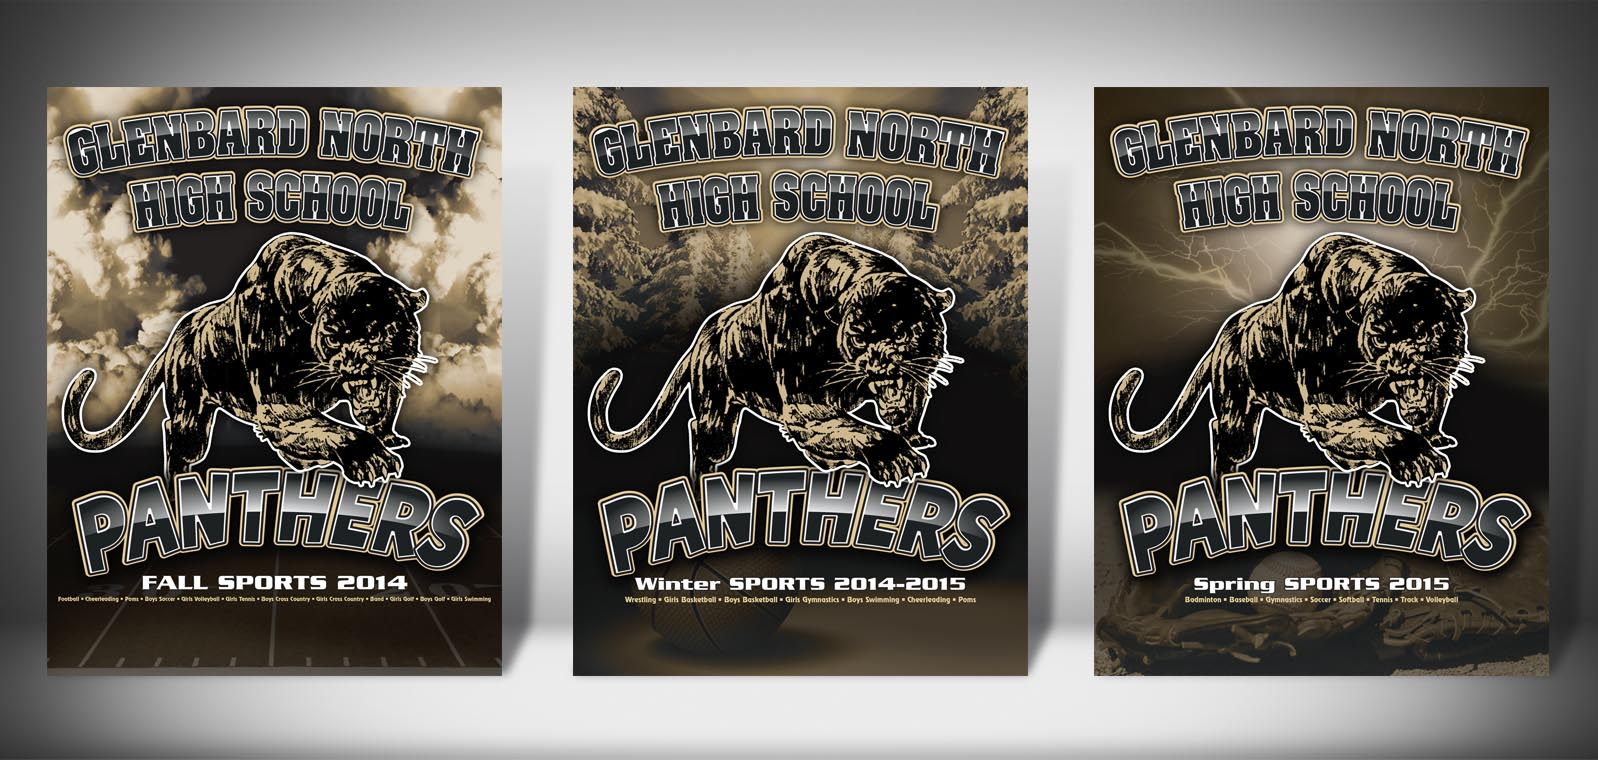 The Front Covers for the 2014-2015 Glenbard North High School Sports Program Graphic Design by Roselle Graphic Designer Controlled Color, Inc.